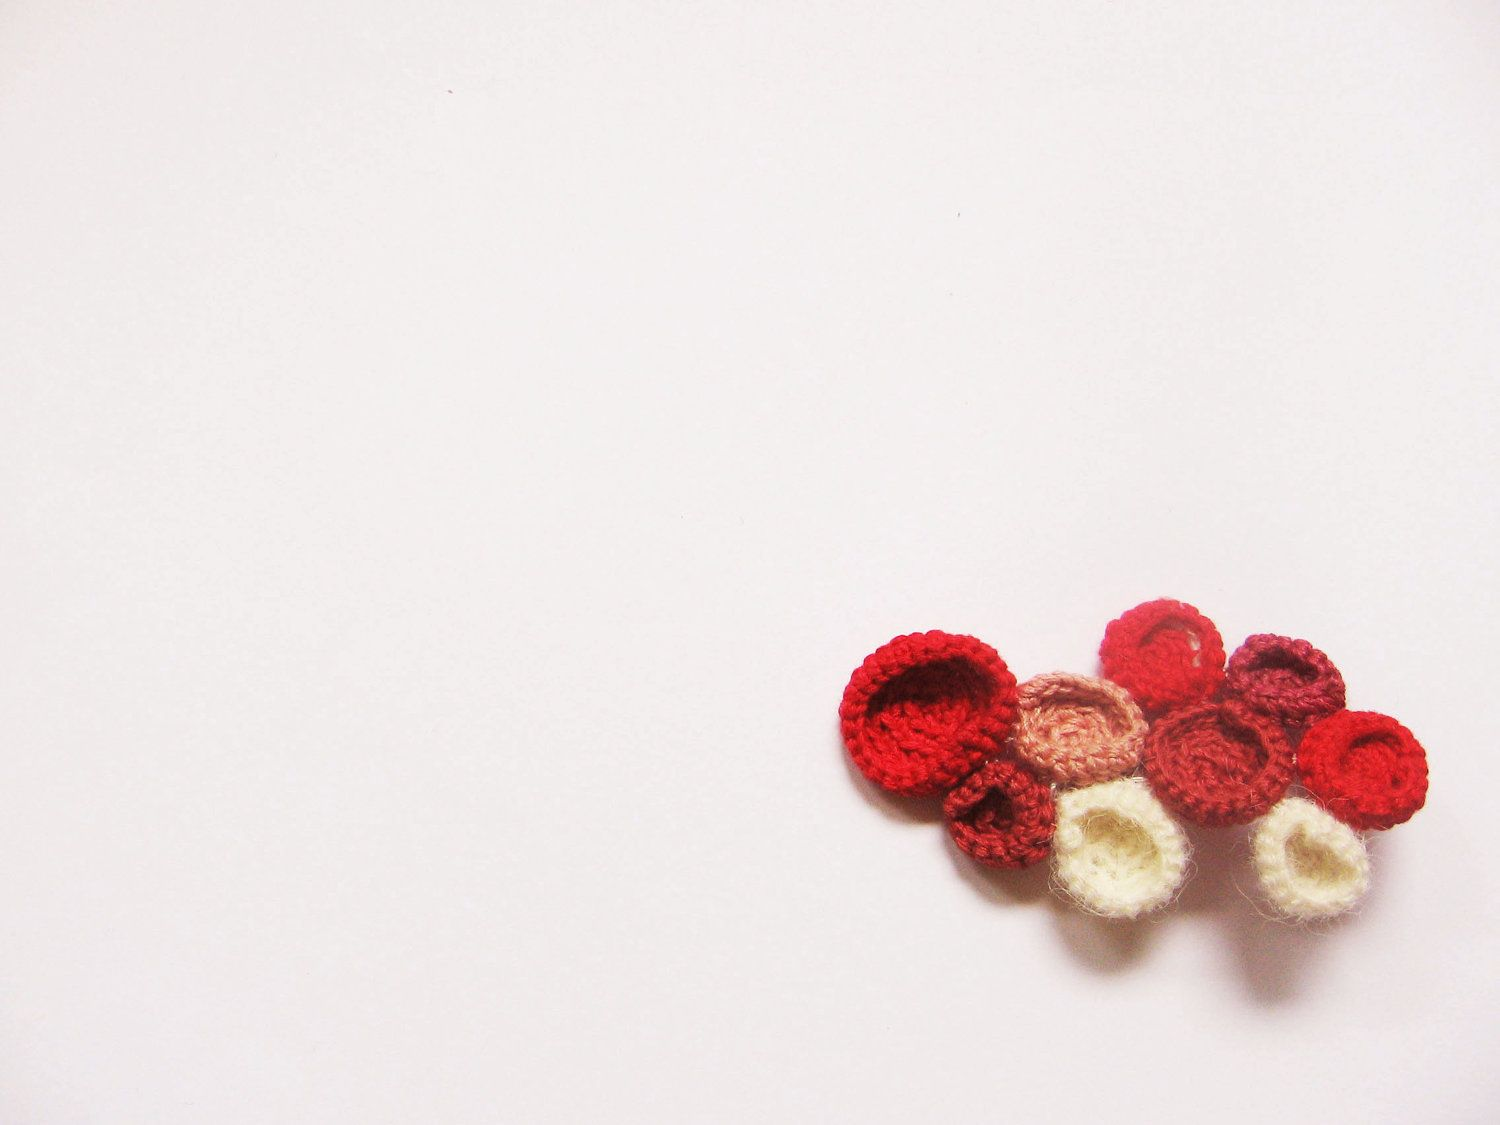 Bubbles brooch by @C. C. Any on etsy #red #burgundy #cream #white #circles #pink #bubbles #crochet #freeform #brooch #jewelry #cool #funky #geometric #modul #round